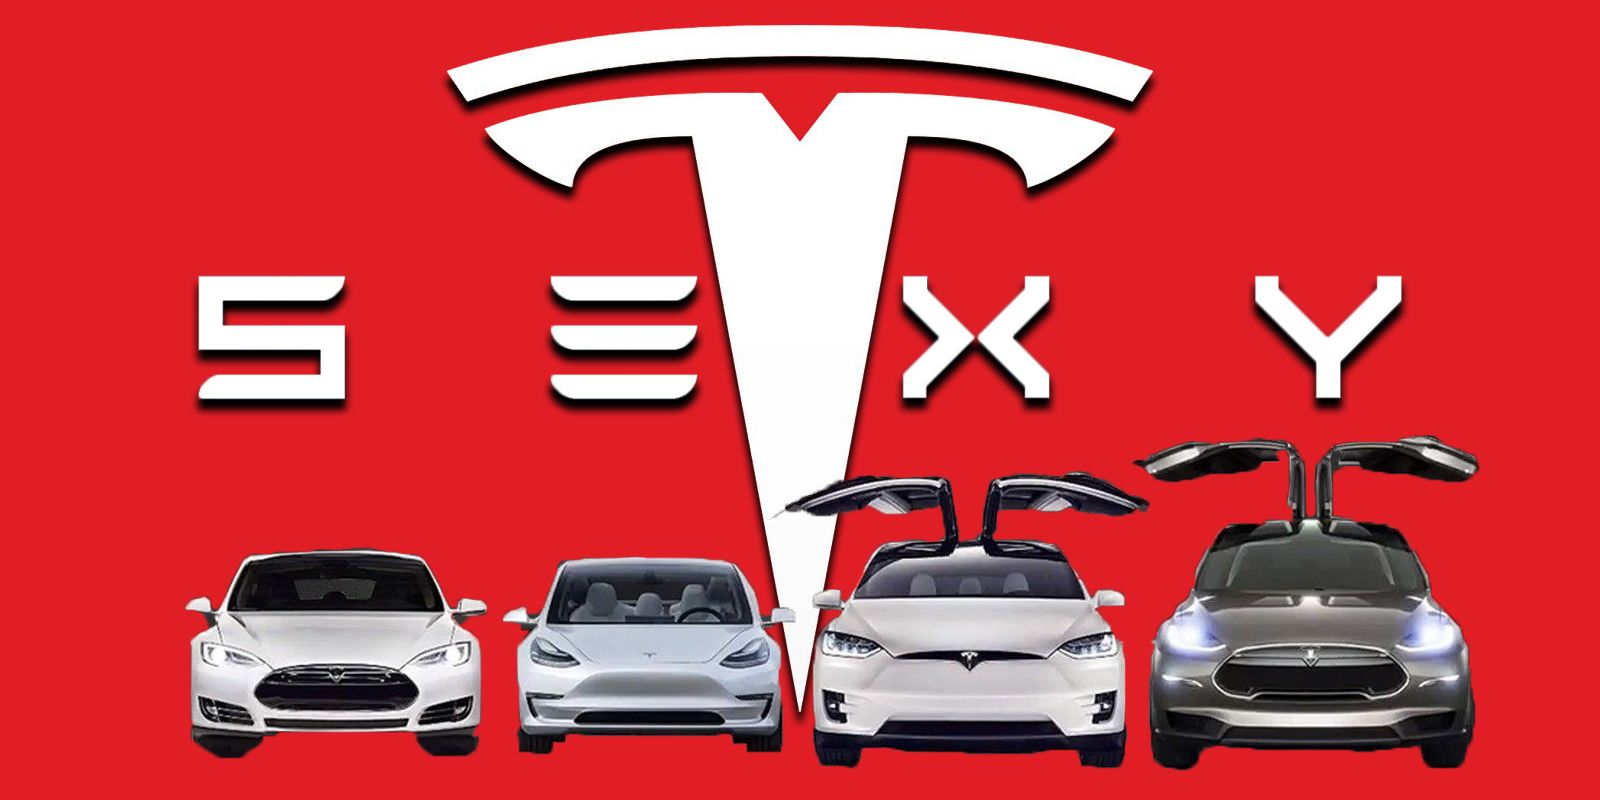 Tesla Car Prices In 2020: How Much Model S, 3, X, & Y Cost